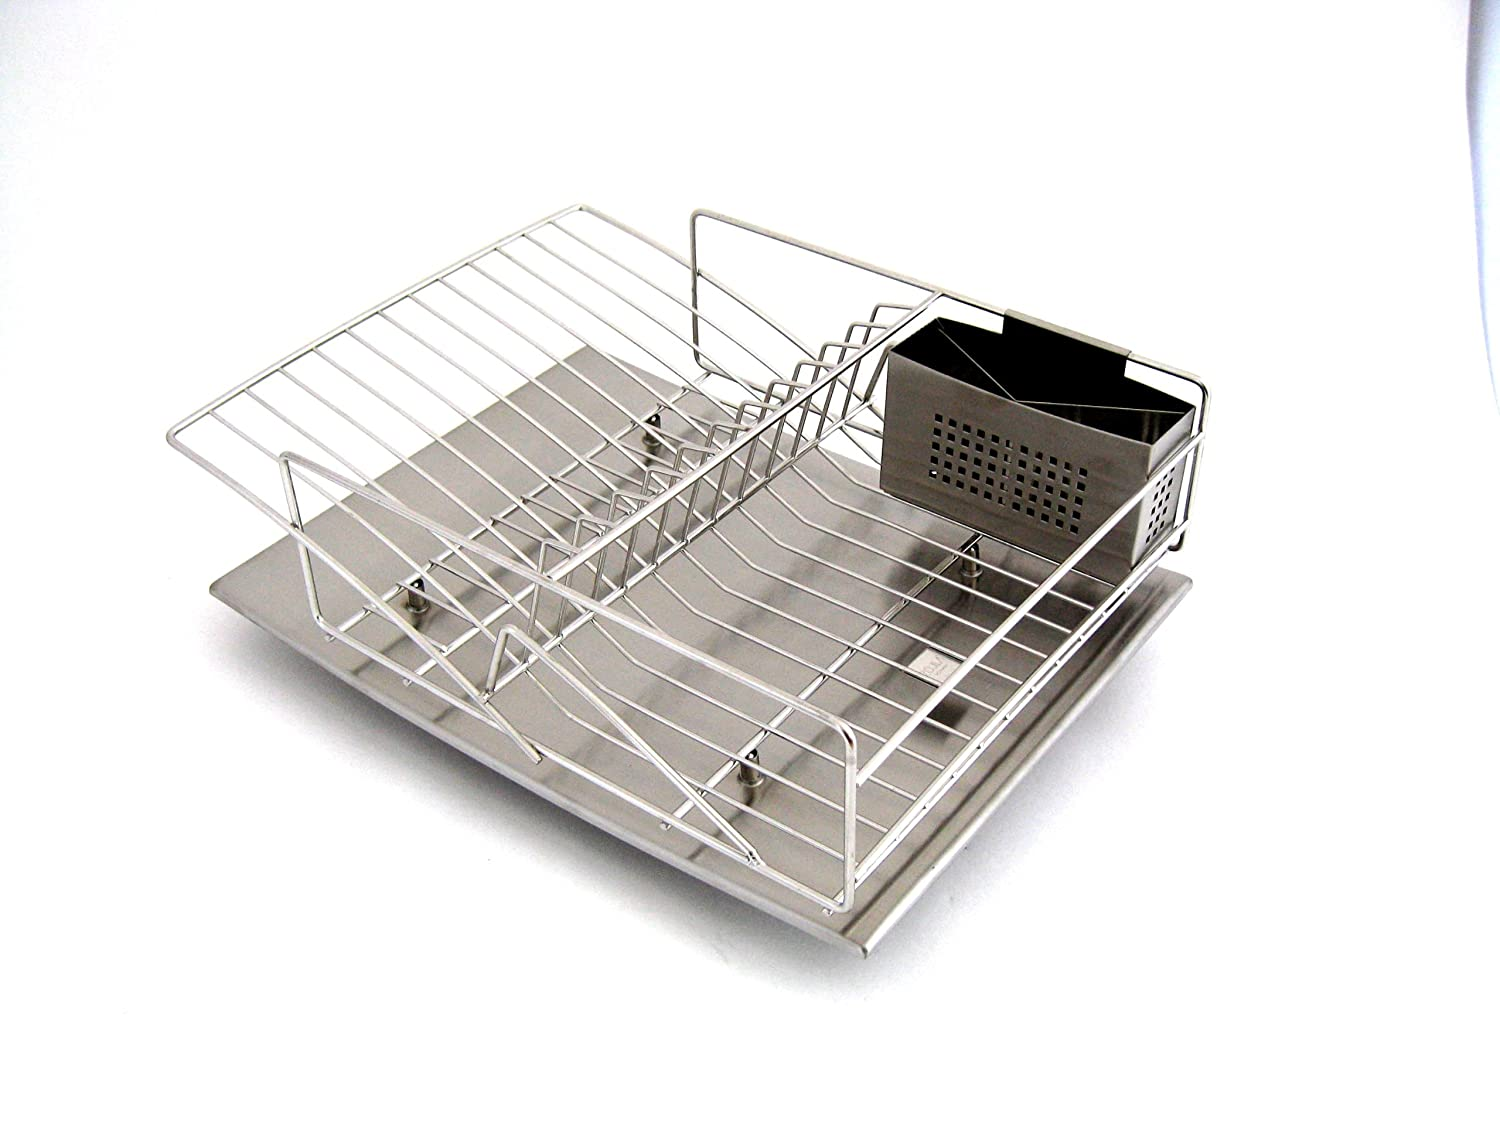 Kitchen Dish Rack Amazoncom Zojila Rohan Dish Rack Drain Board And Utensil Holder